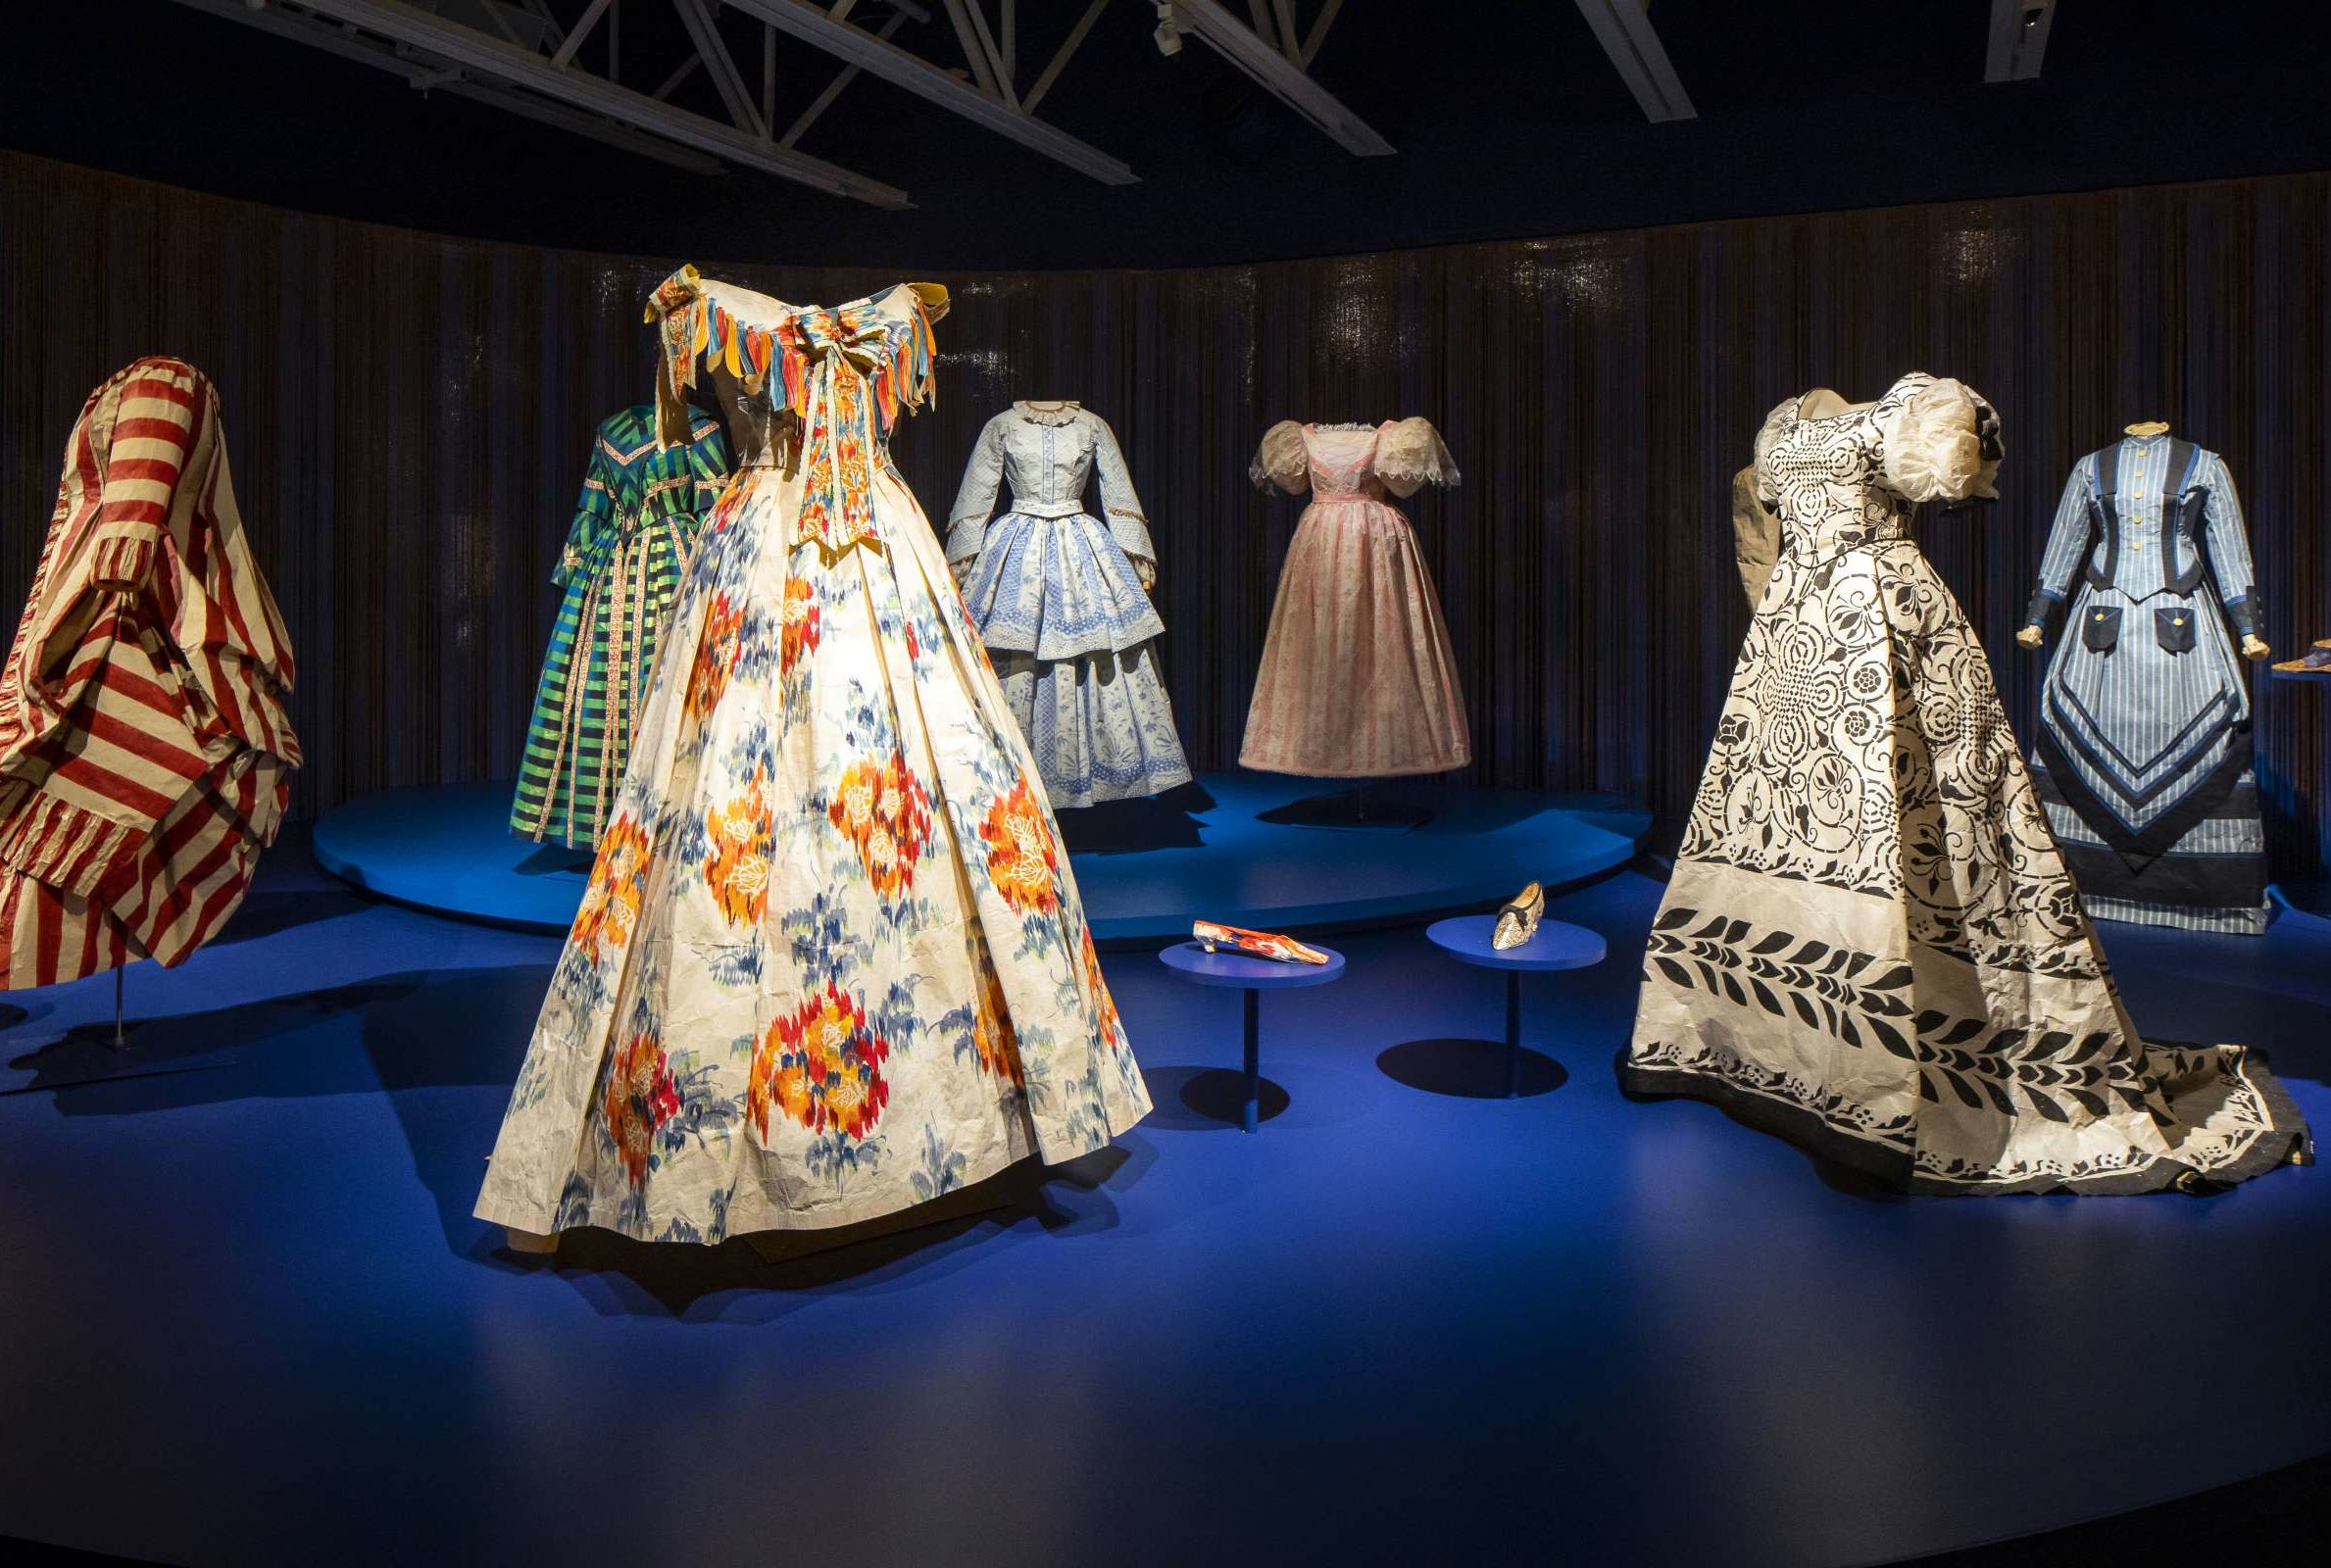 Meet Isabelle de Borchgrave, the Belgian Artist Who Recreates Historical Fashion Using Paper